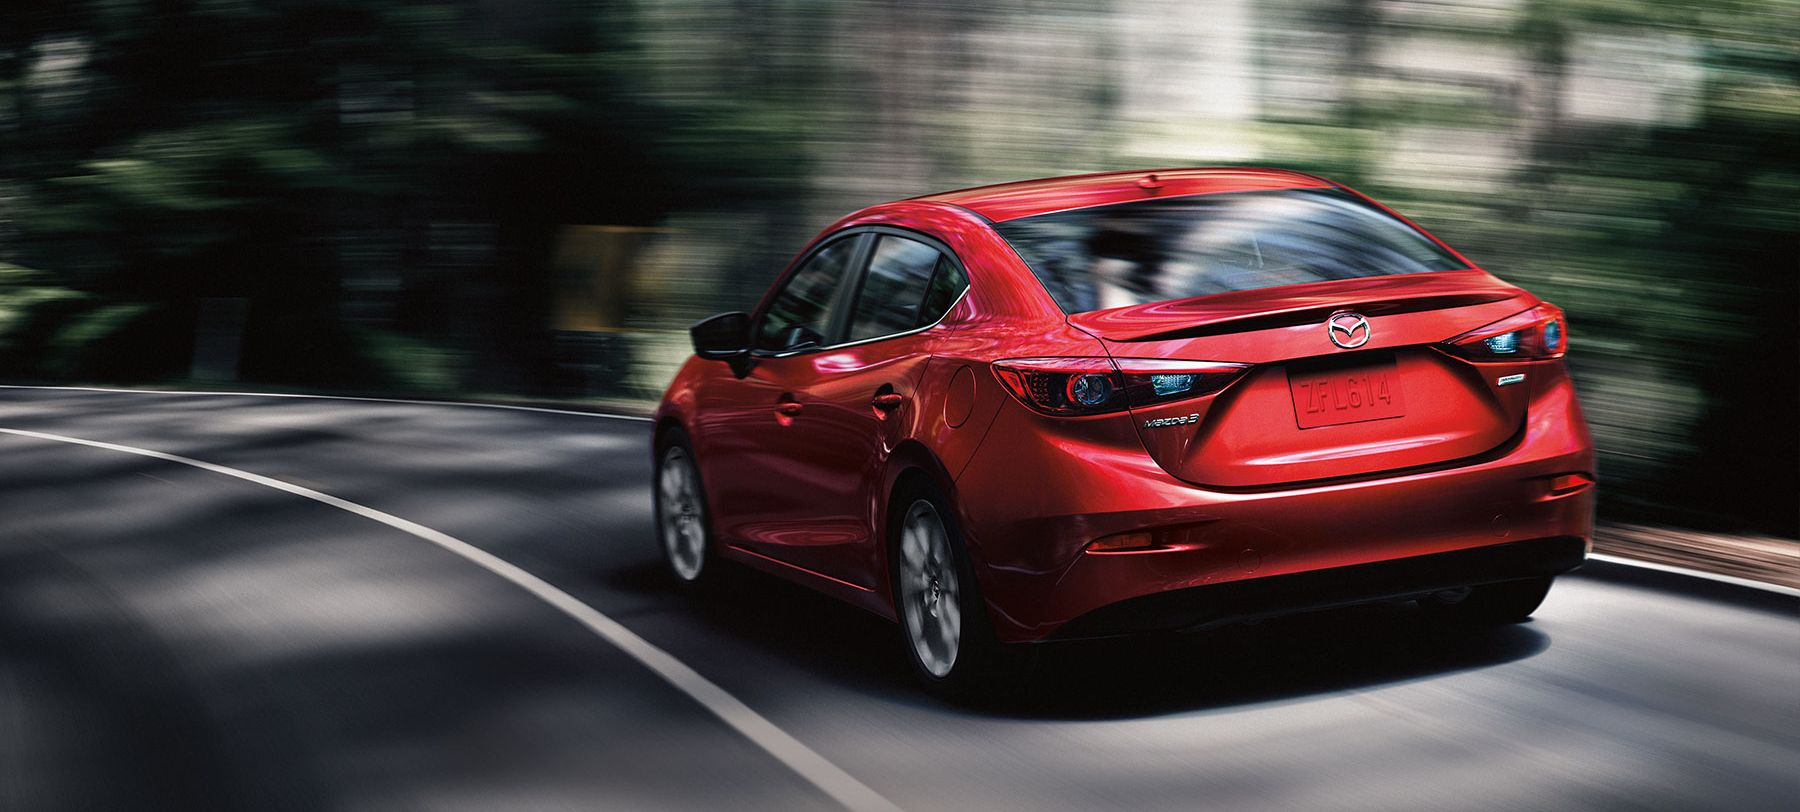 Take Home a Mazda Today!